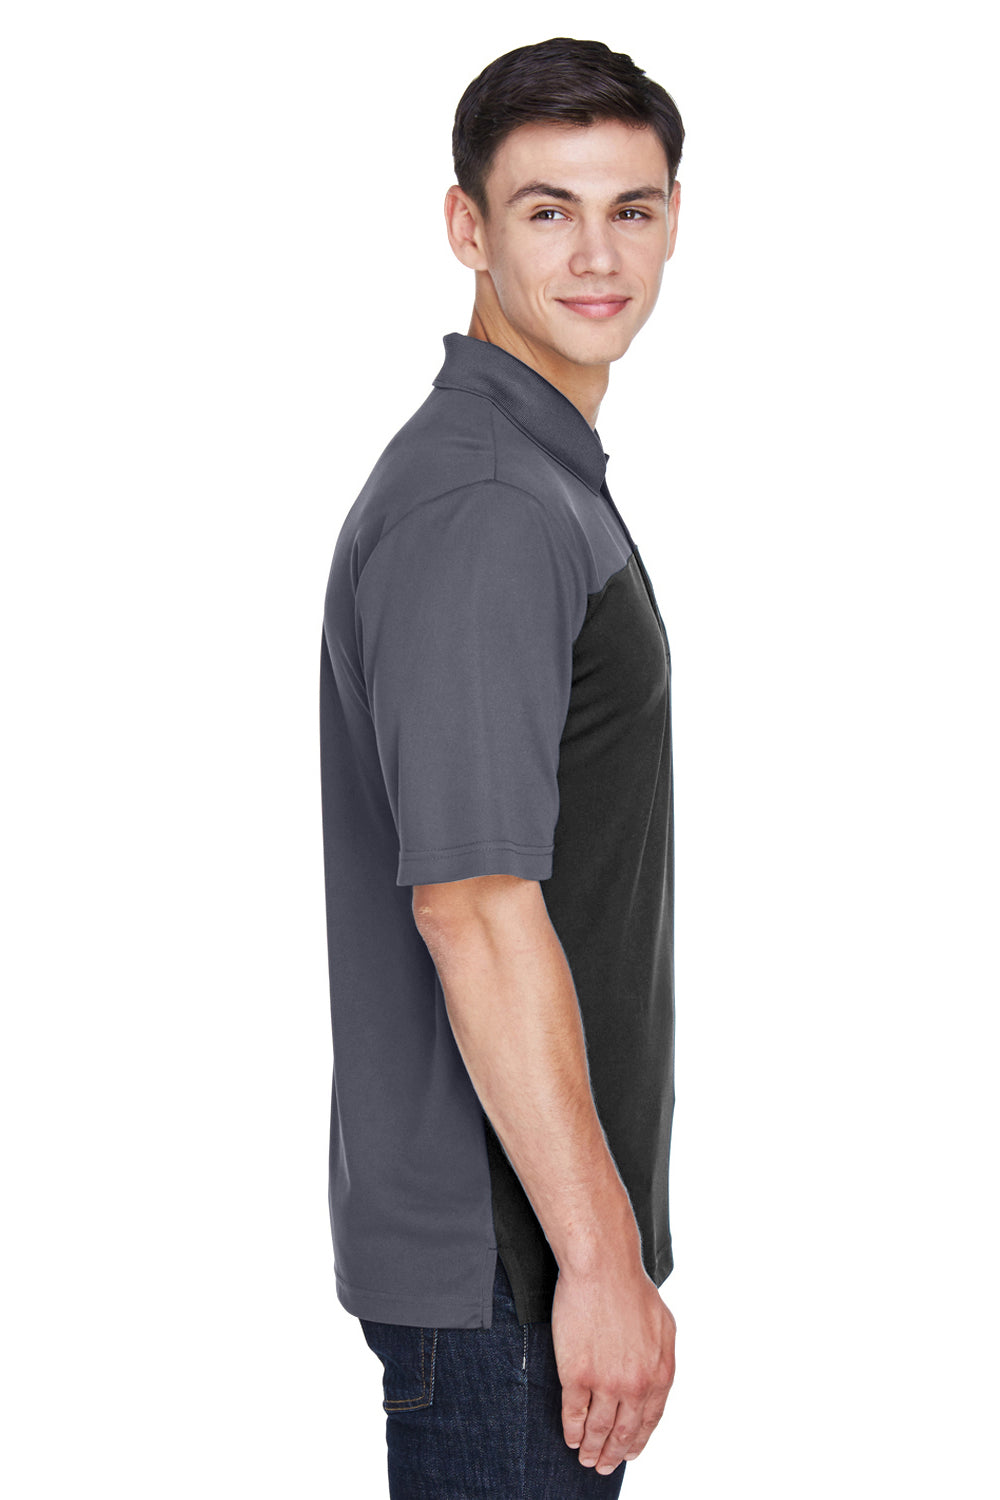 Core 365 CE101 Mens Balance Performance Moisture Wicking Short Sleeve Polo Shirt Black/Grey Side